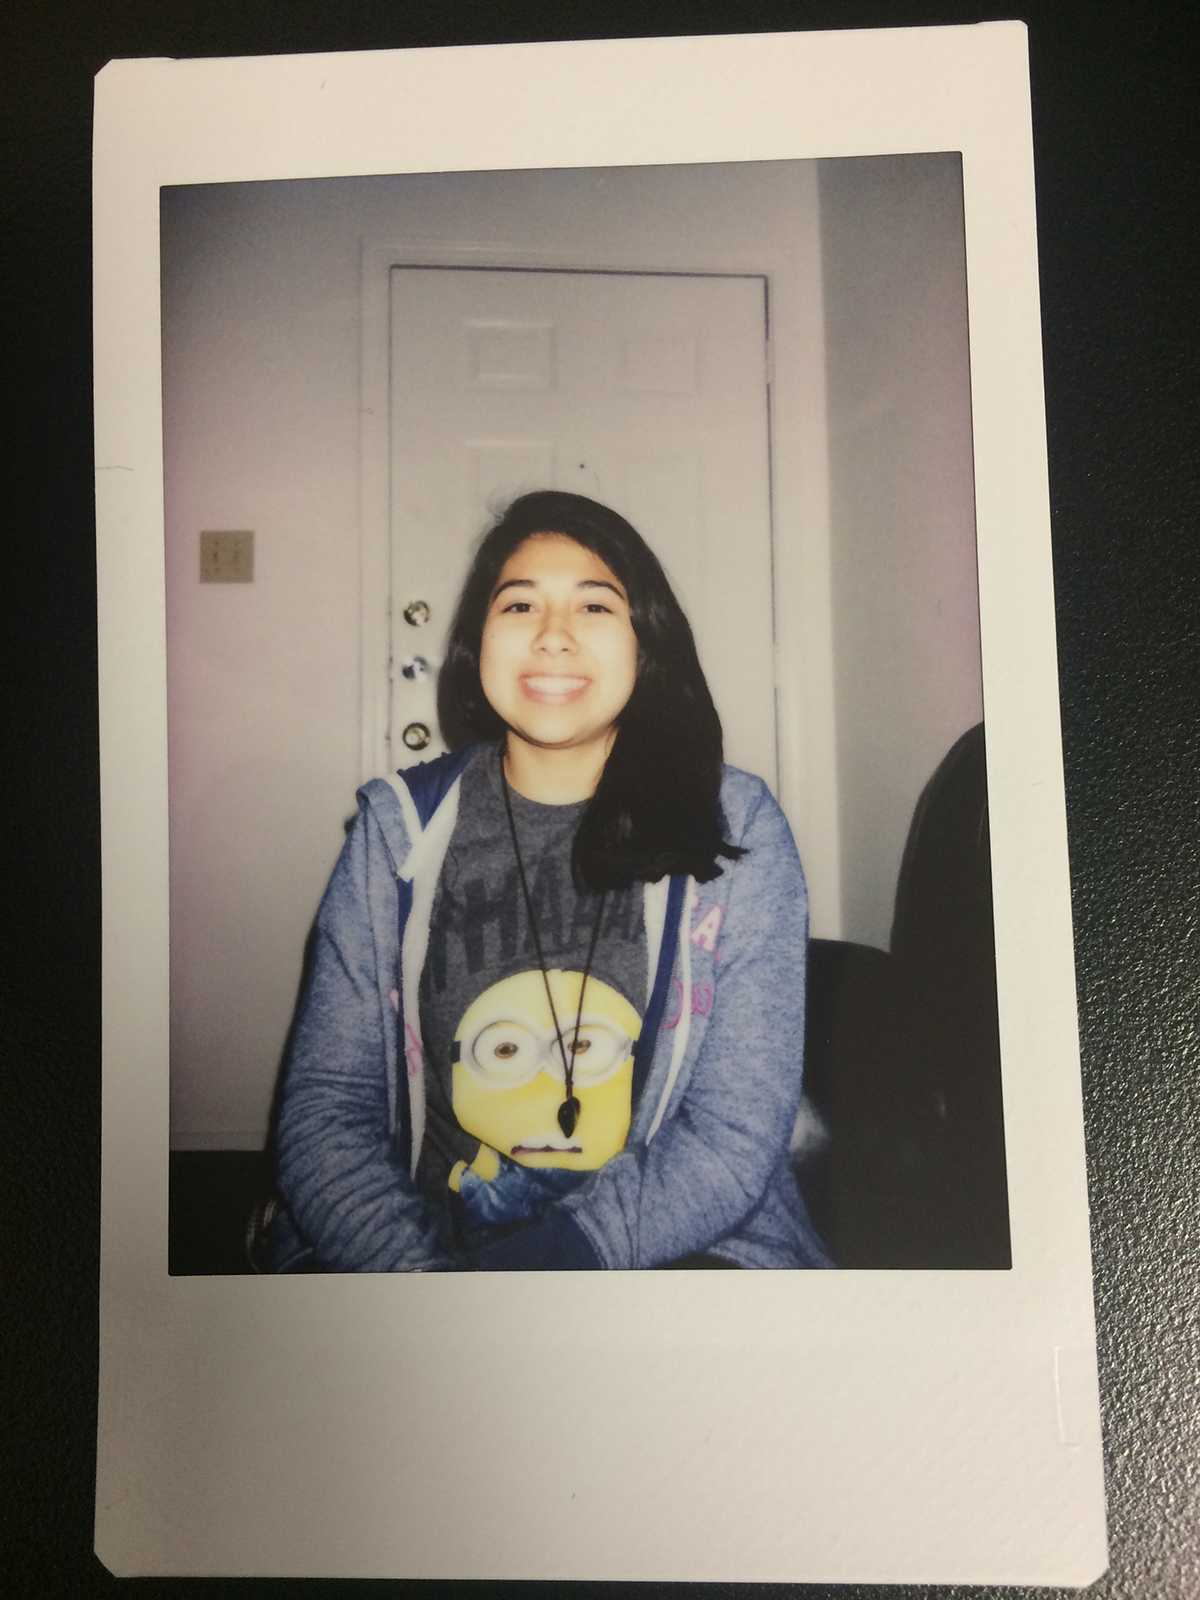 Alondra Gonzales takes a snapshot with a Polaroid while visiting a friends house.